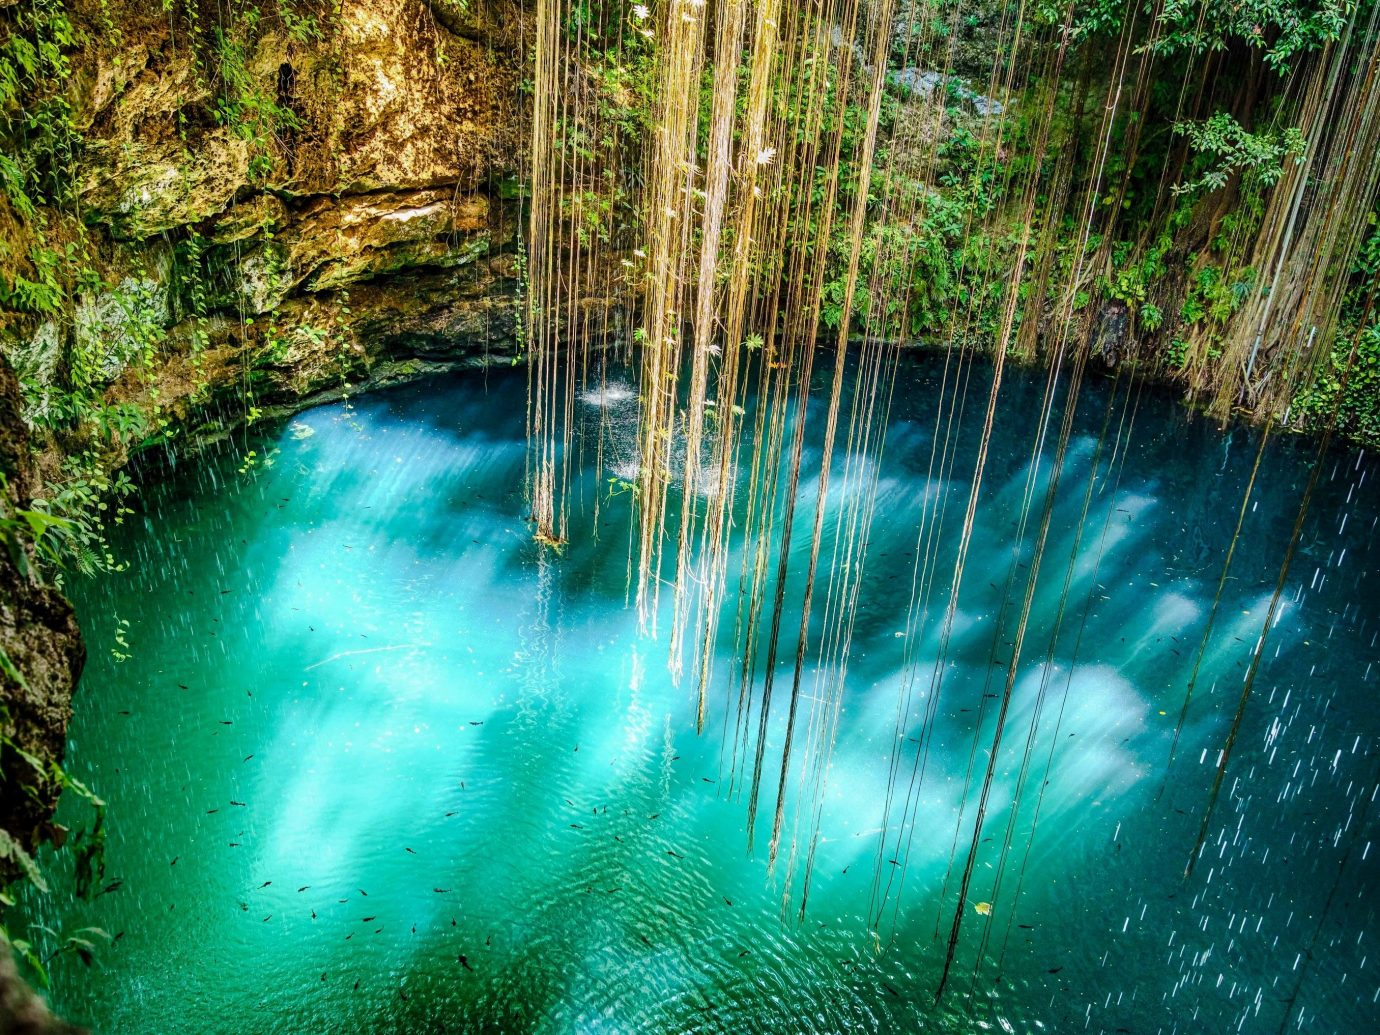 Hotels Trip Ideas water Nature green body of water vegetation water resources Waterfall nature reserve watercourse water feature reflection stream tree Forest landscape Jungle River formation grass rainforest pond old growth forest mineral spring creek tributary